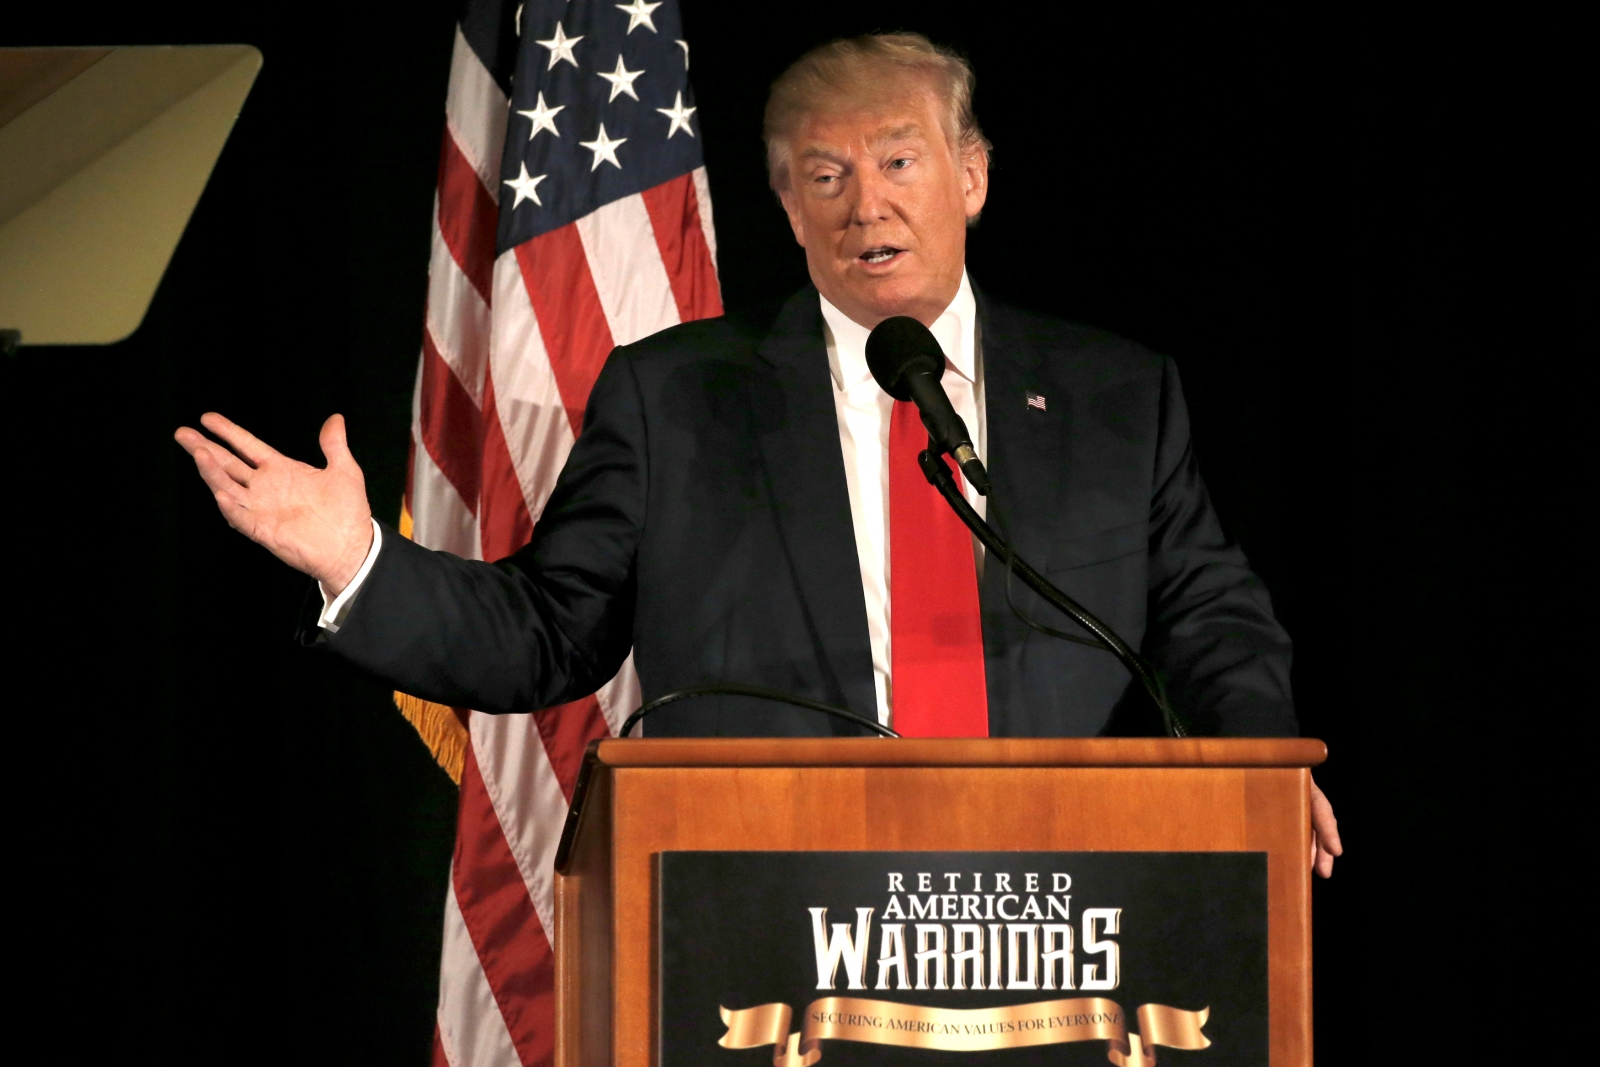 Did Donald Trump just insult veterans?